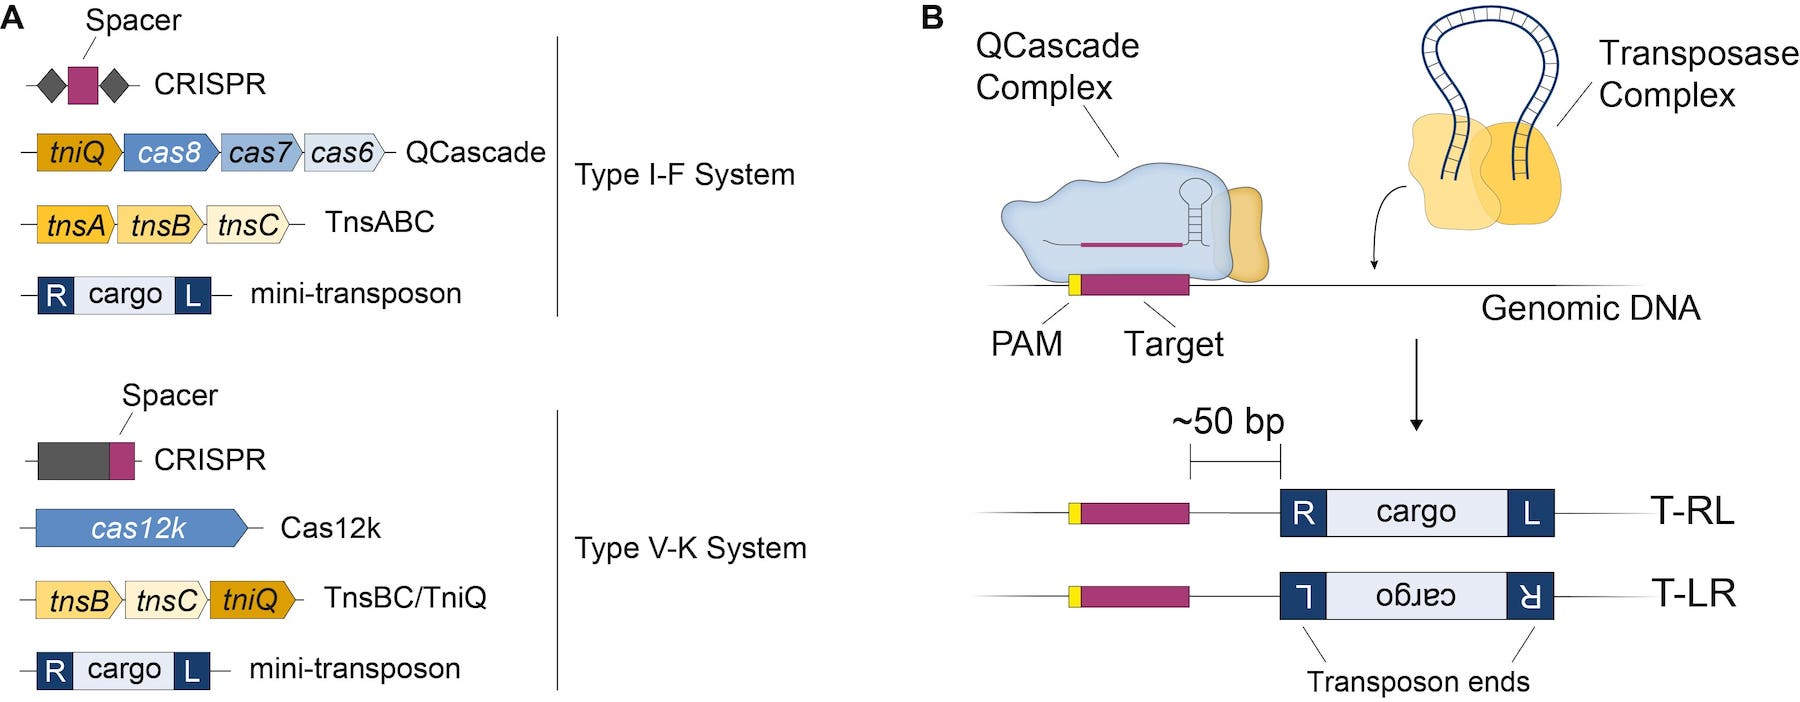 Left: components of the Type I-F system and Type V-K system. Right: The QCascade complex targets the target site while the transposase complex brings the donor DNA.